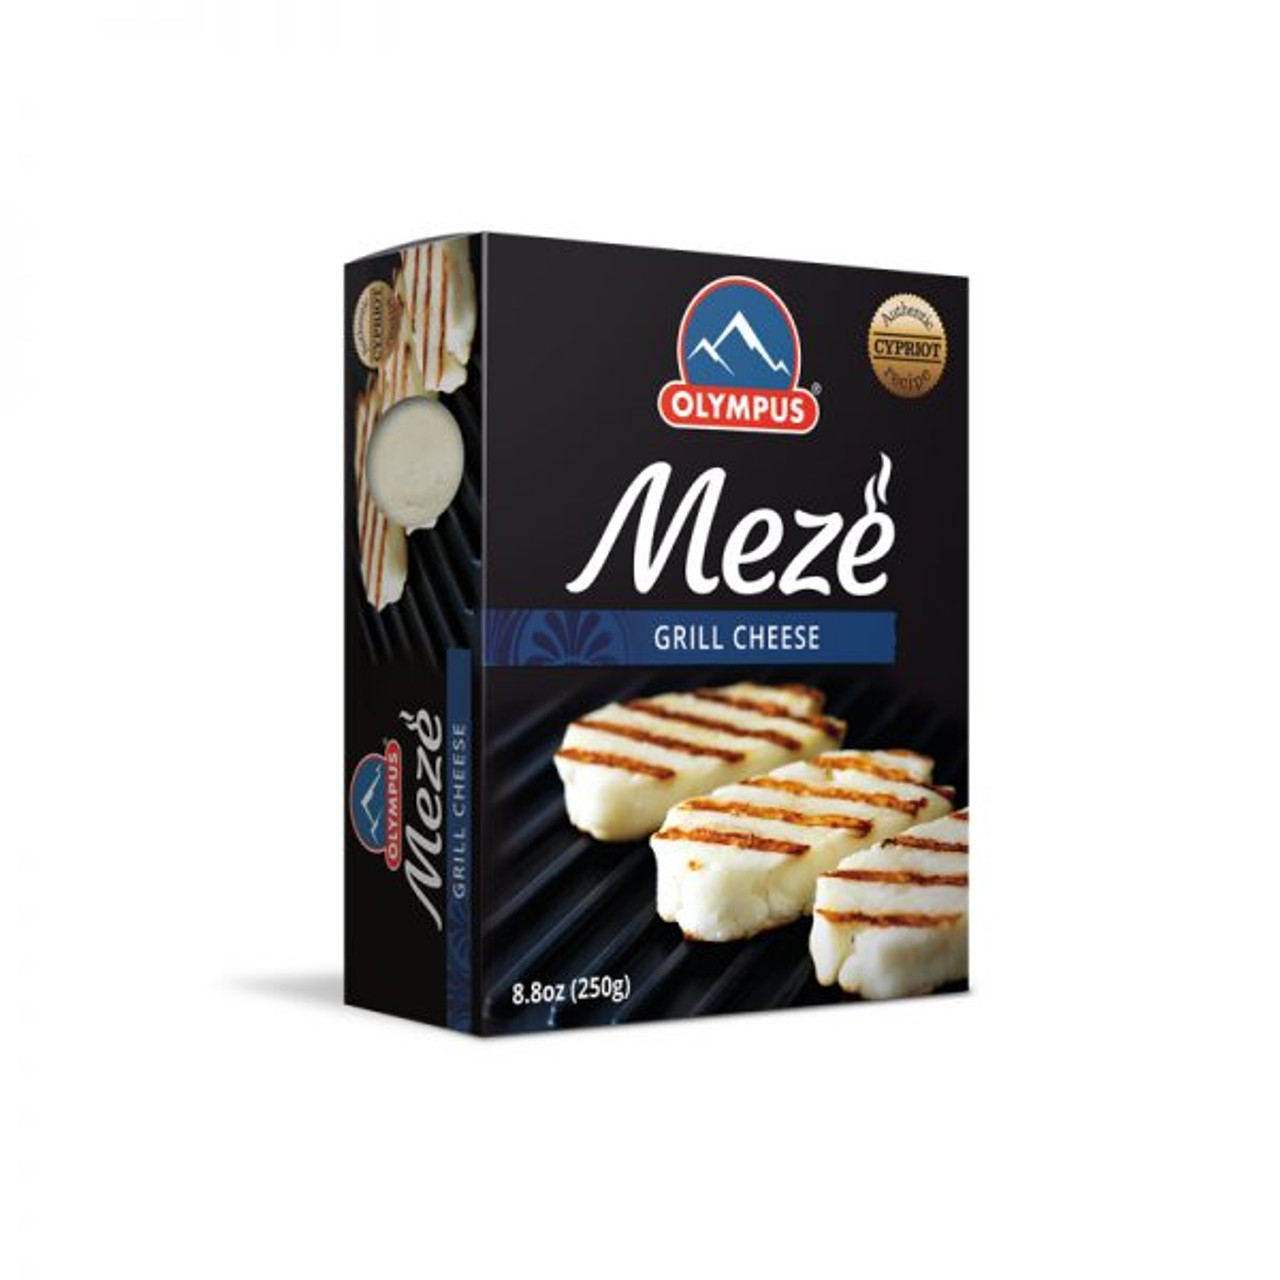 OLYMPUS MEZE GRILL CHEESE 250g (HALLOUMI STYLE)